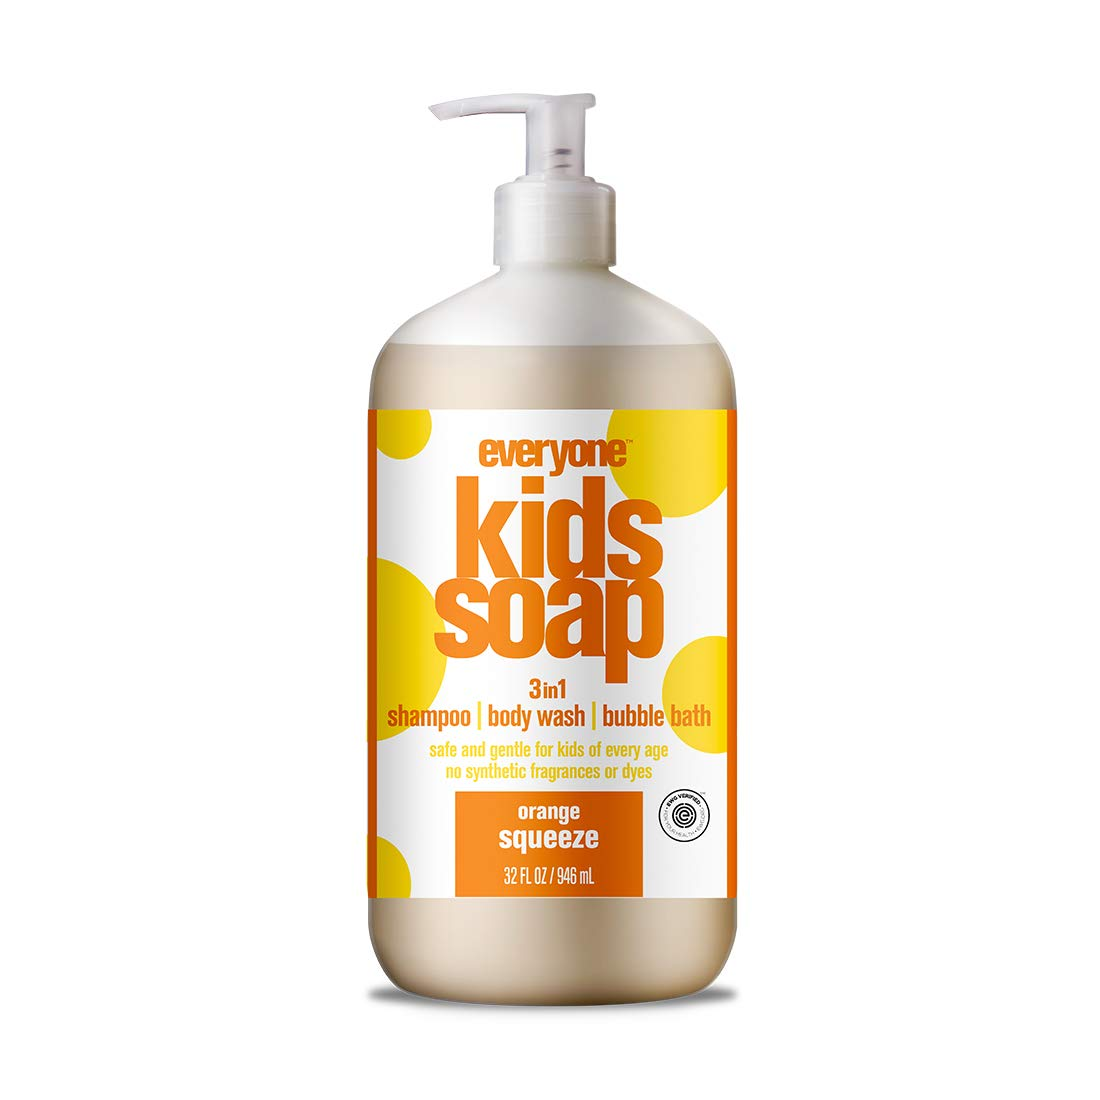 Everyone 3-in-1 Soap for Every Kid for Safe, Gentle and Natural Shampoo, Body Wash, or Bubble Bath, Orange Squeeze, 32 Fl Oz (Pack of 6) by Everyone